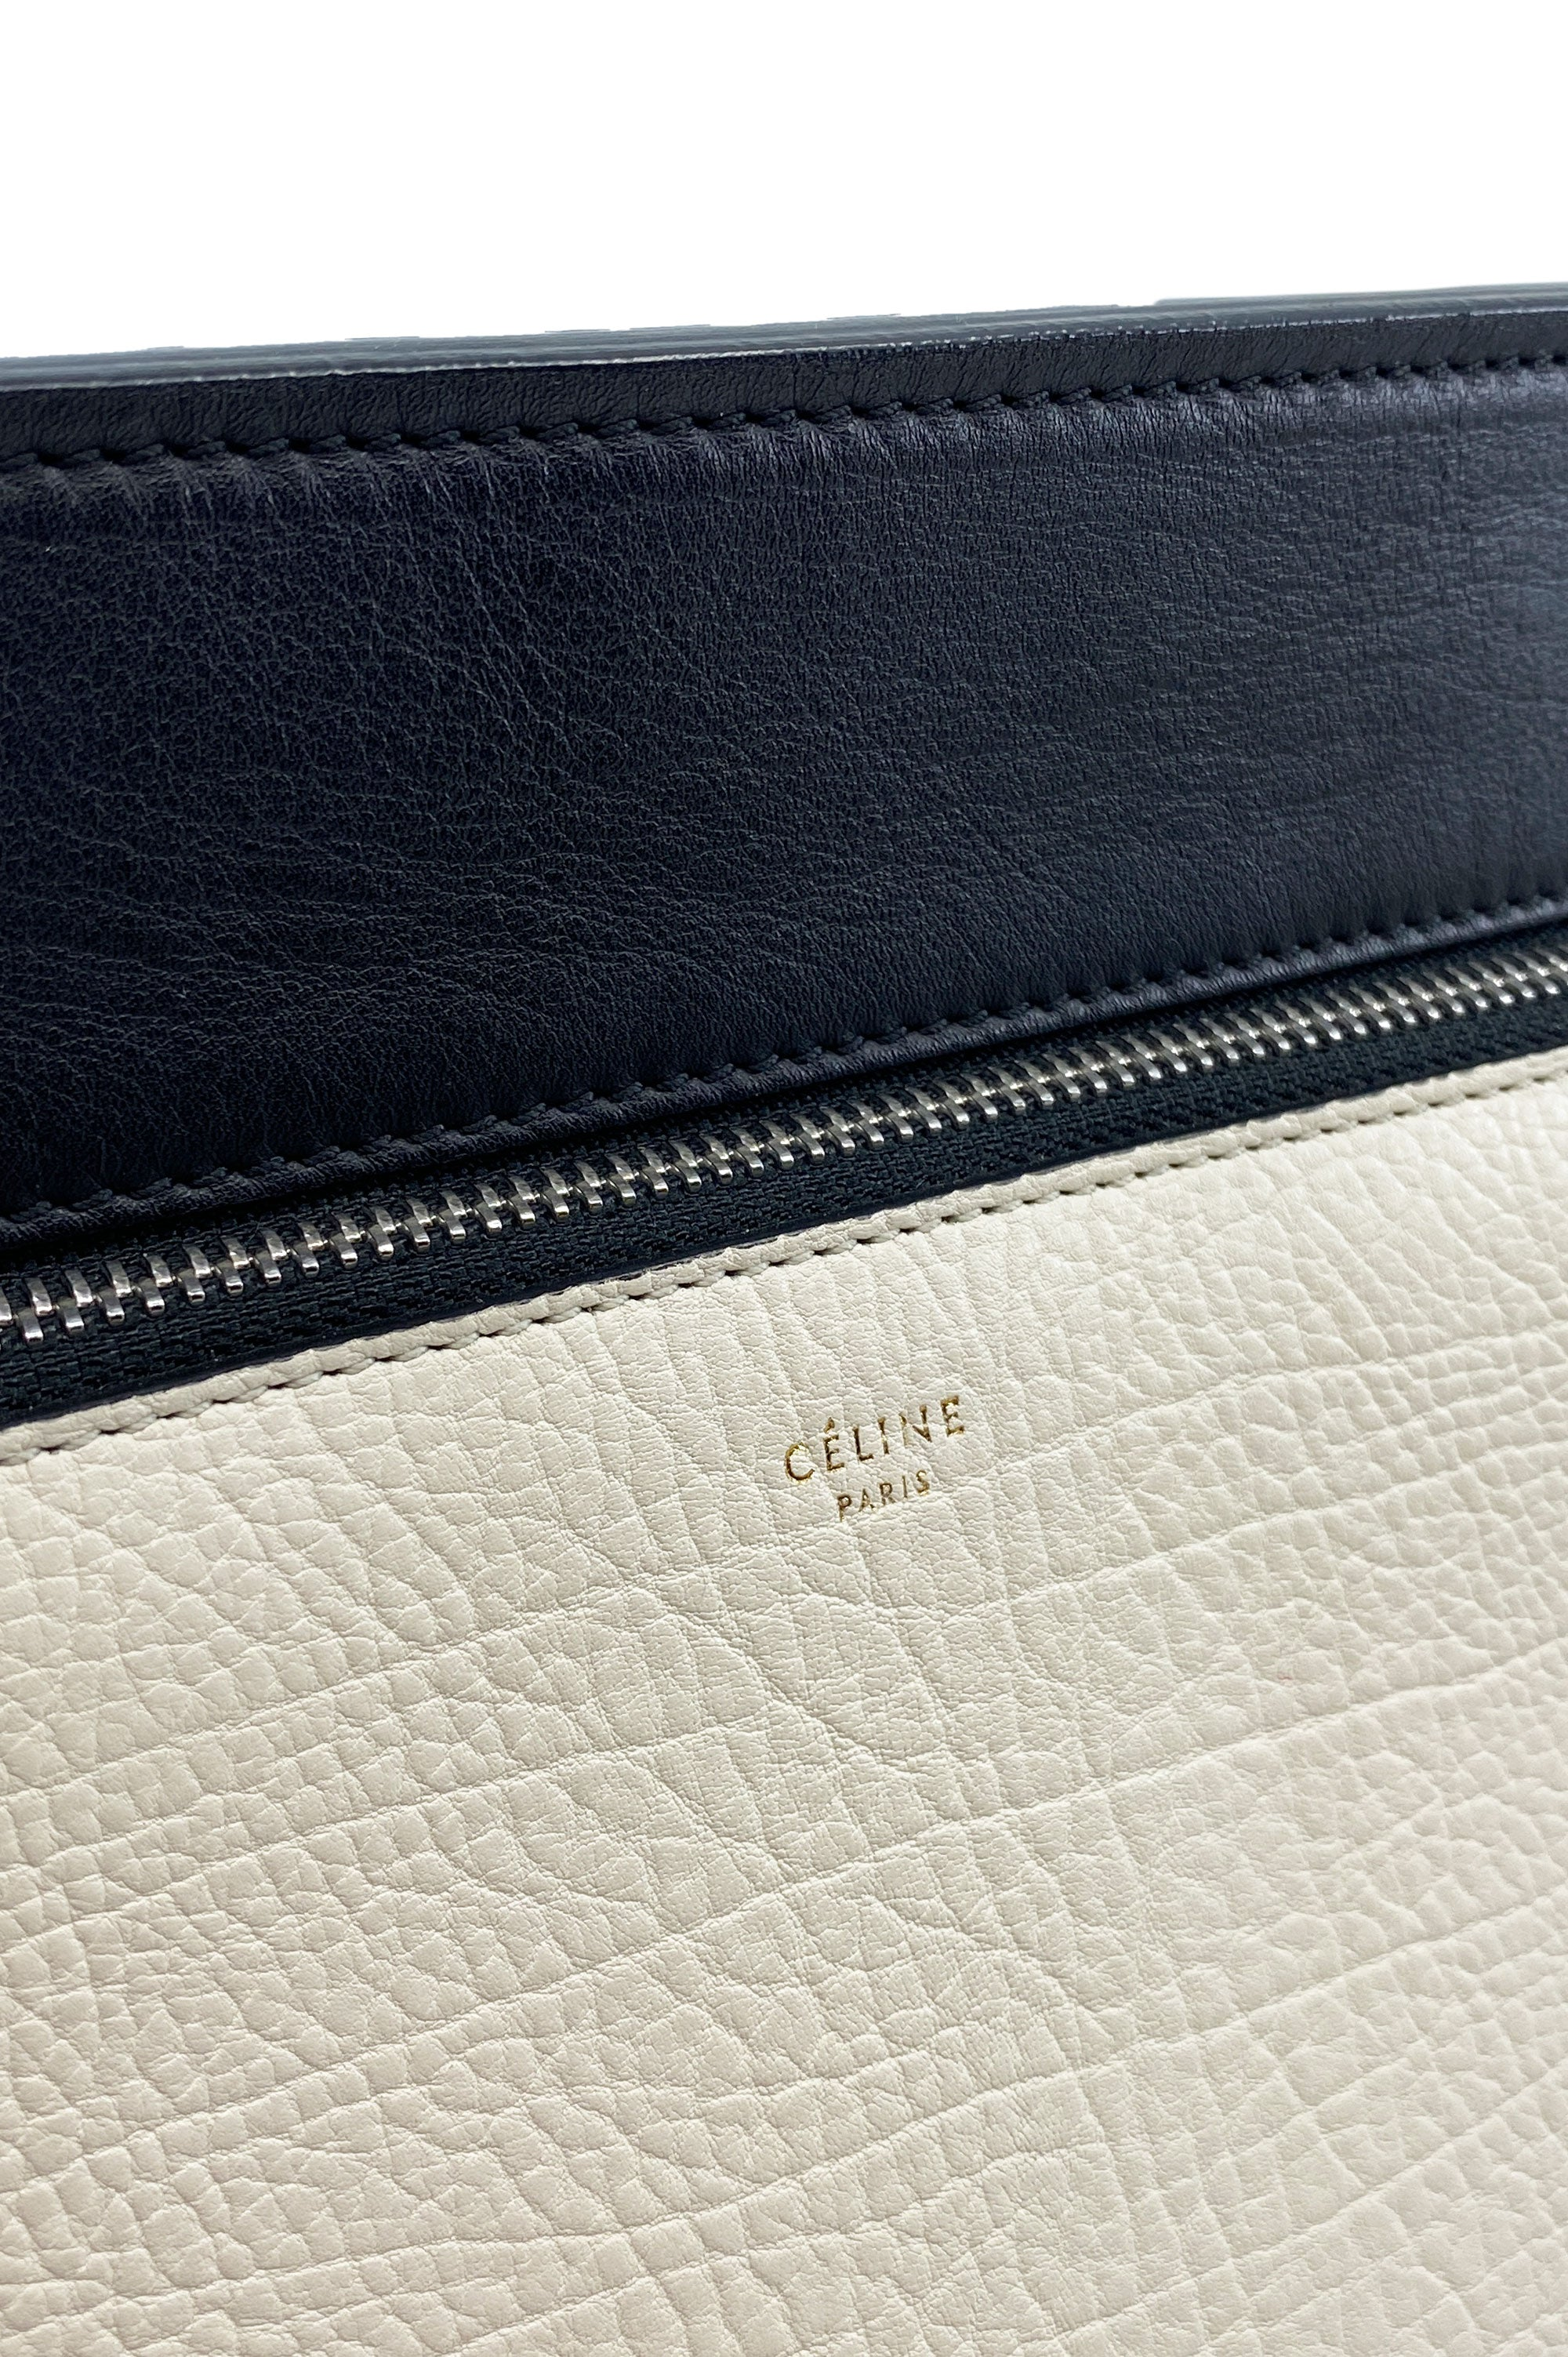 CELINE Edge Bag Black & White